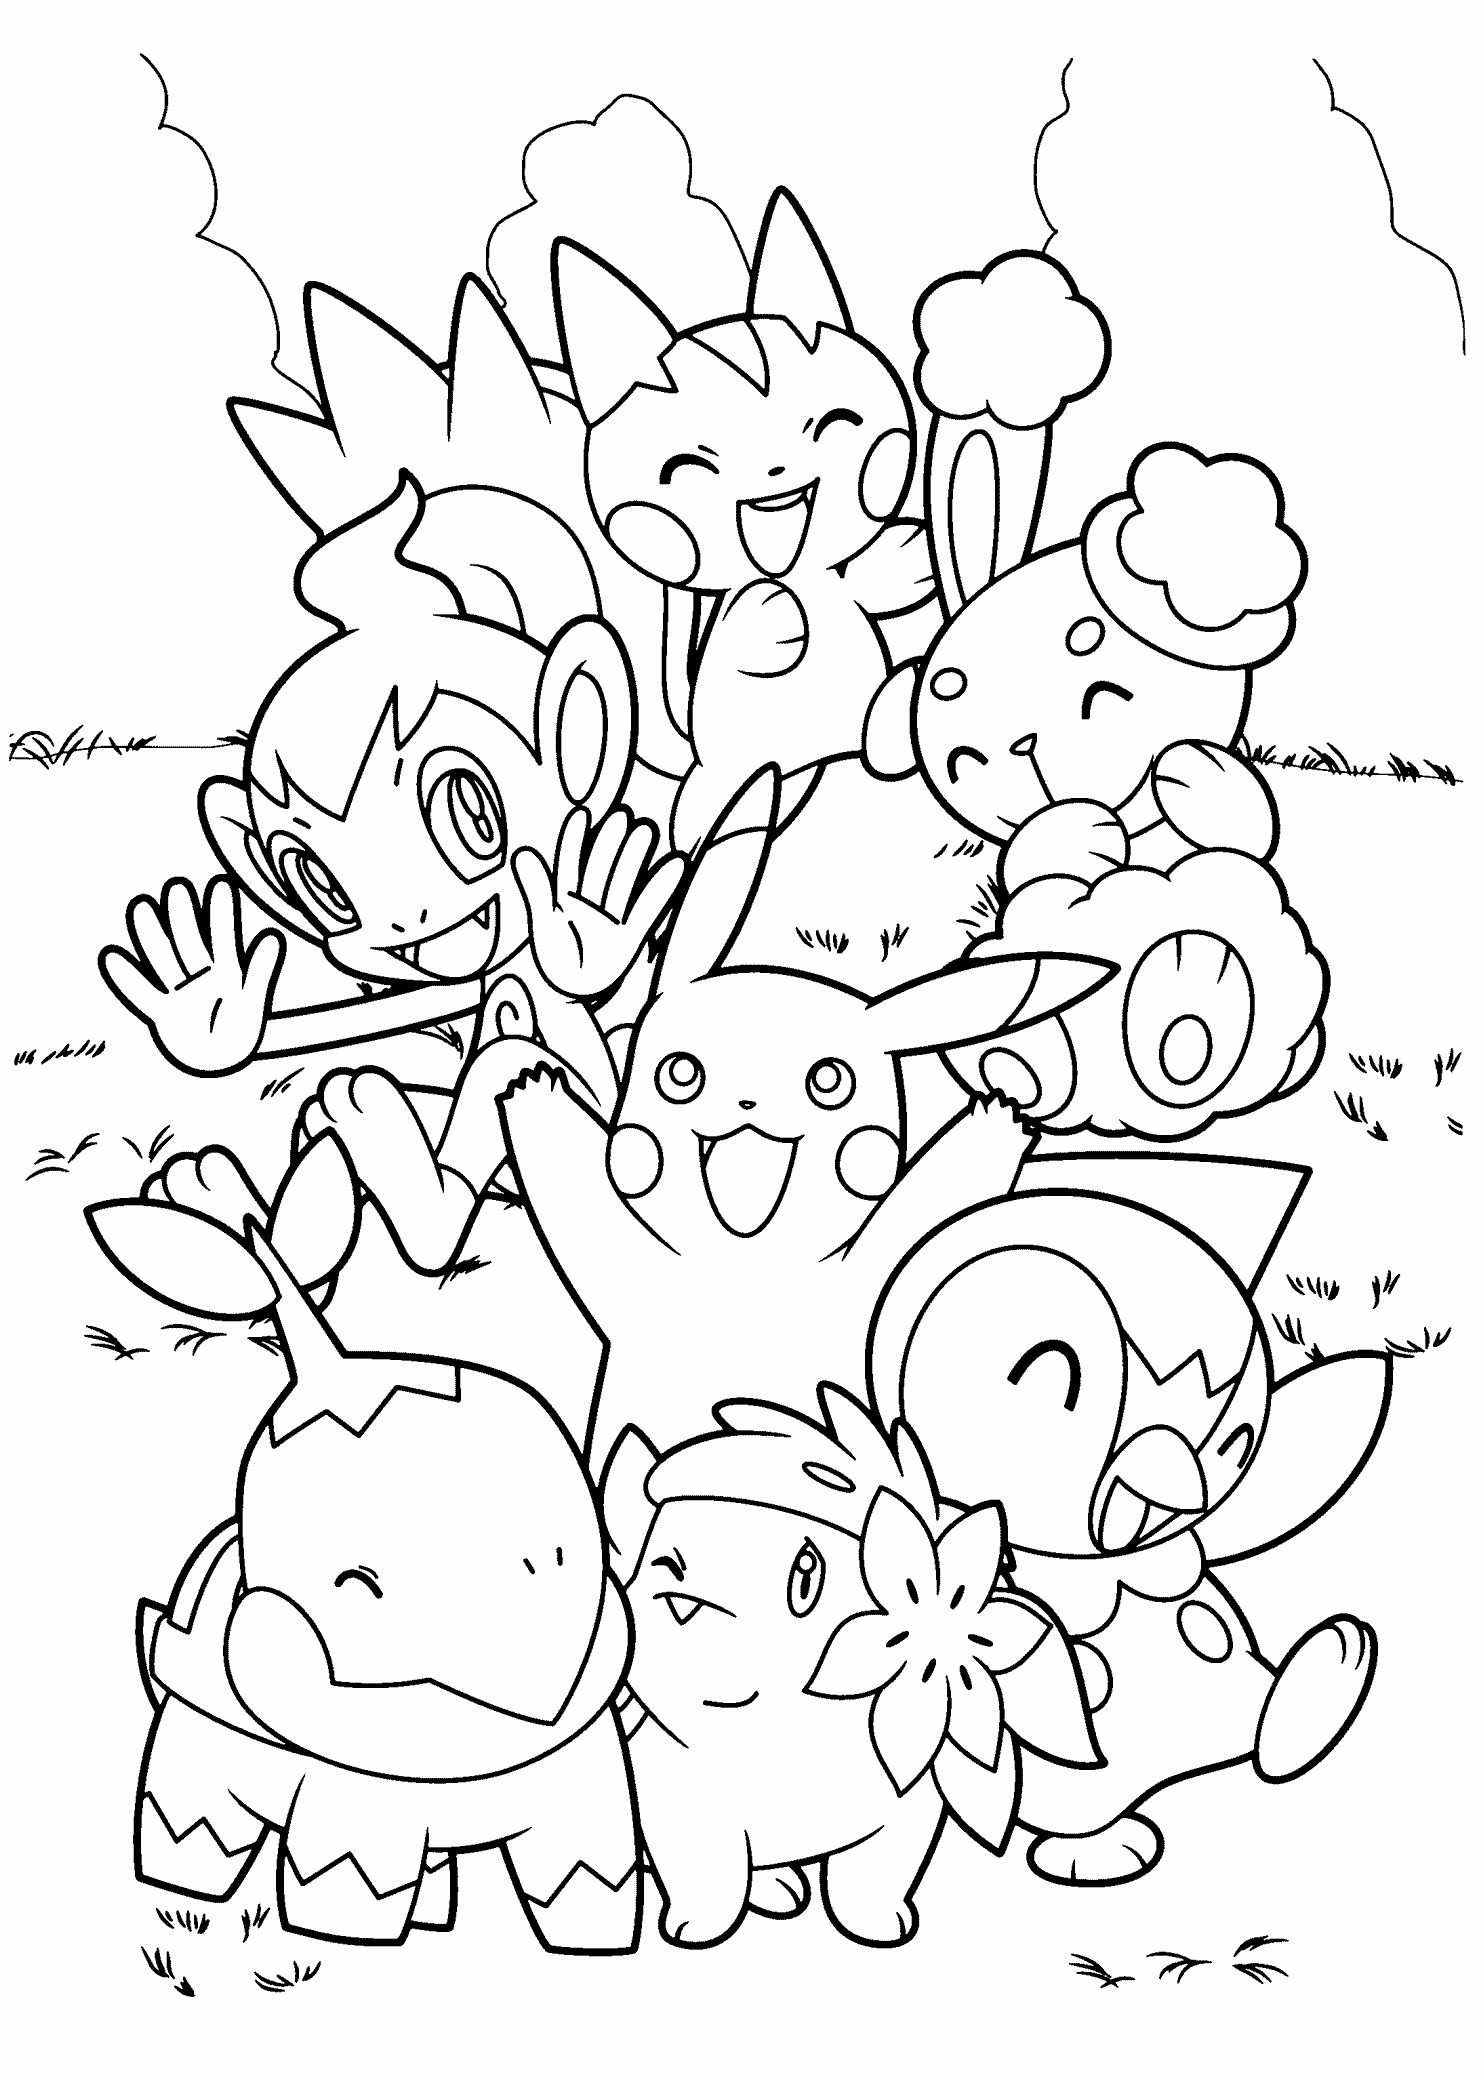 How To Pokemon Drawing Book Pdf New Top 93 Free Printable Pokemon Coloring Pages Line Fall Coloring Pages Pokemon Coloring Pages Pokemon Coloring Sheets